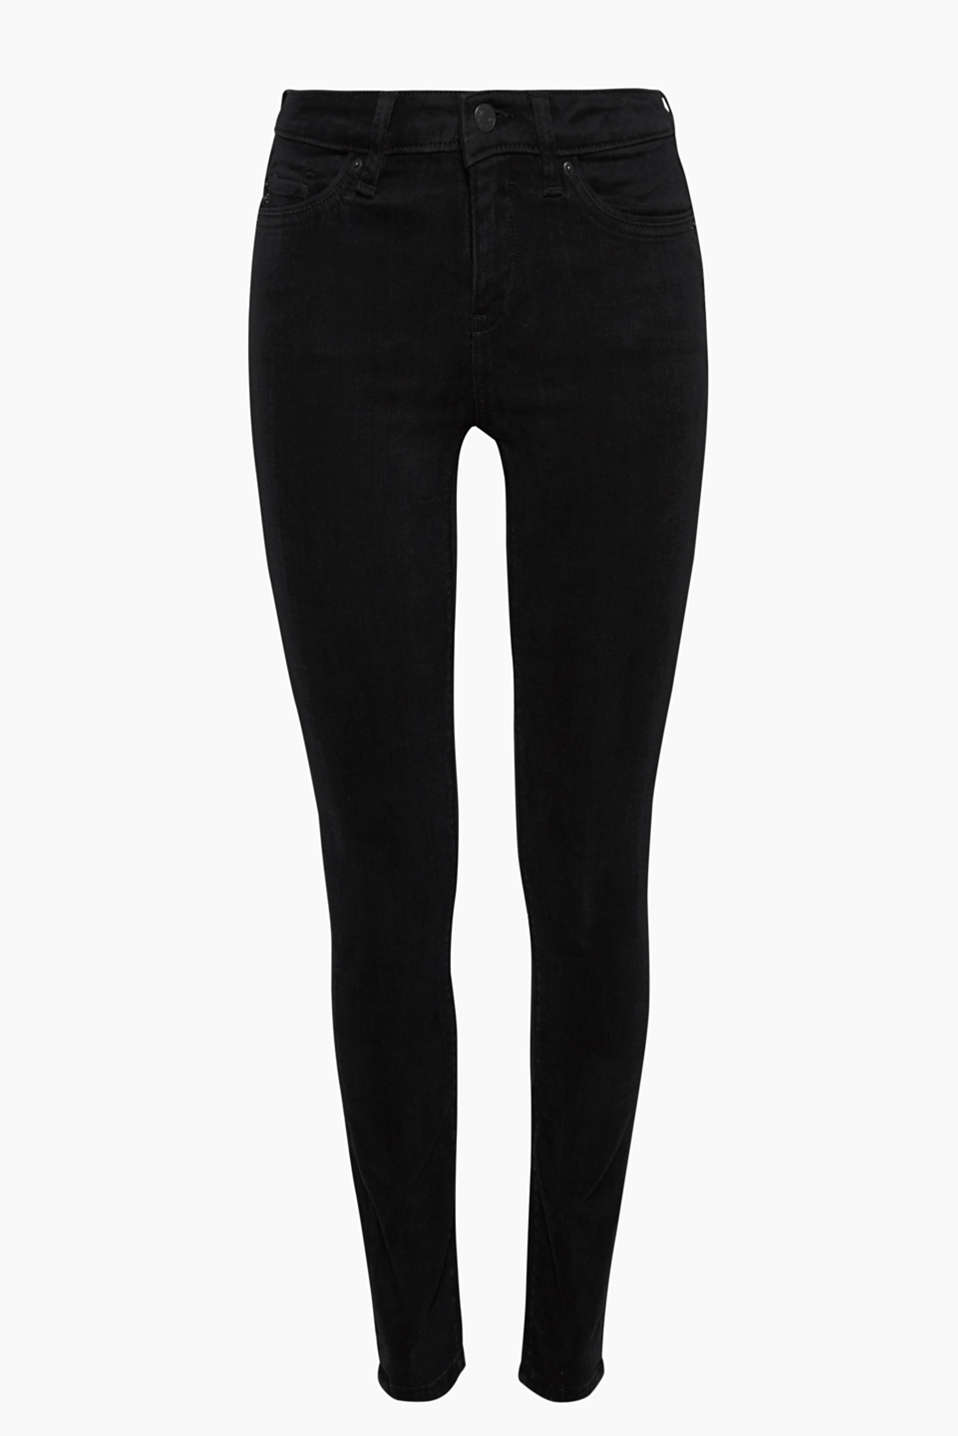 They create a sensational silhouette: black, high-waisted stretch jeans mainly made of organic cotton!